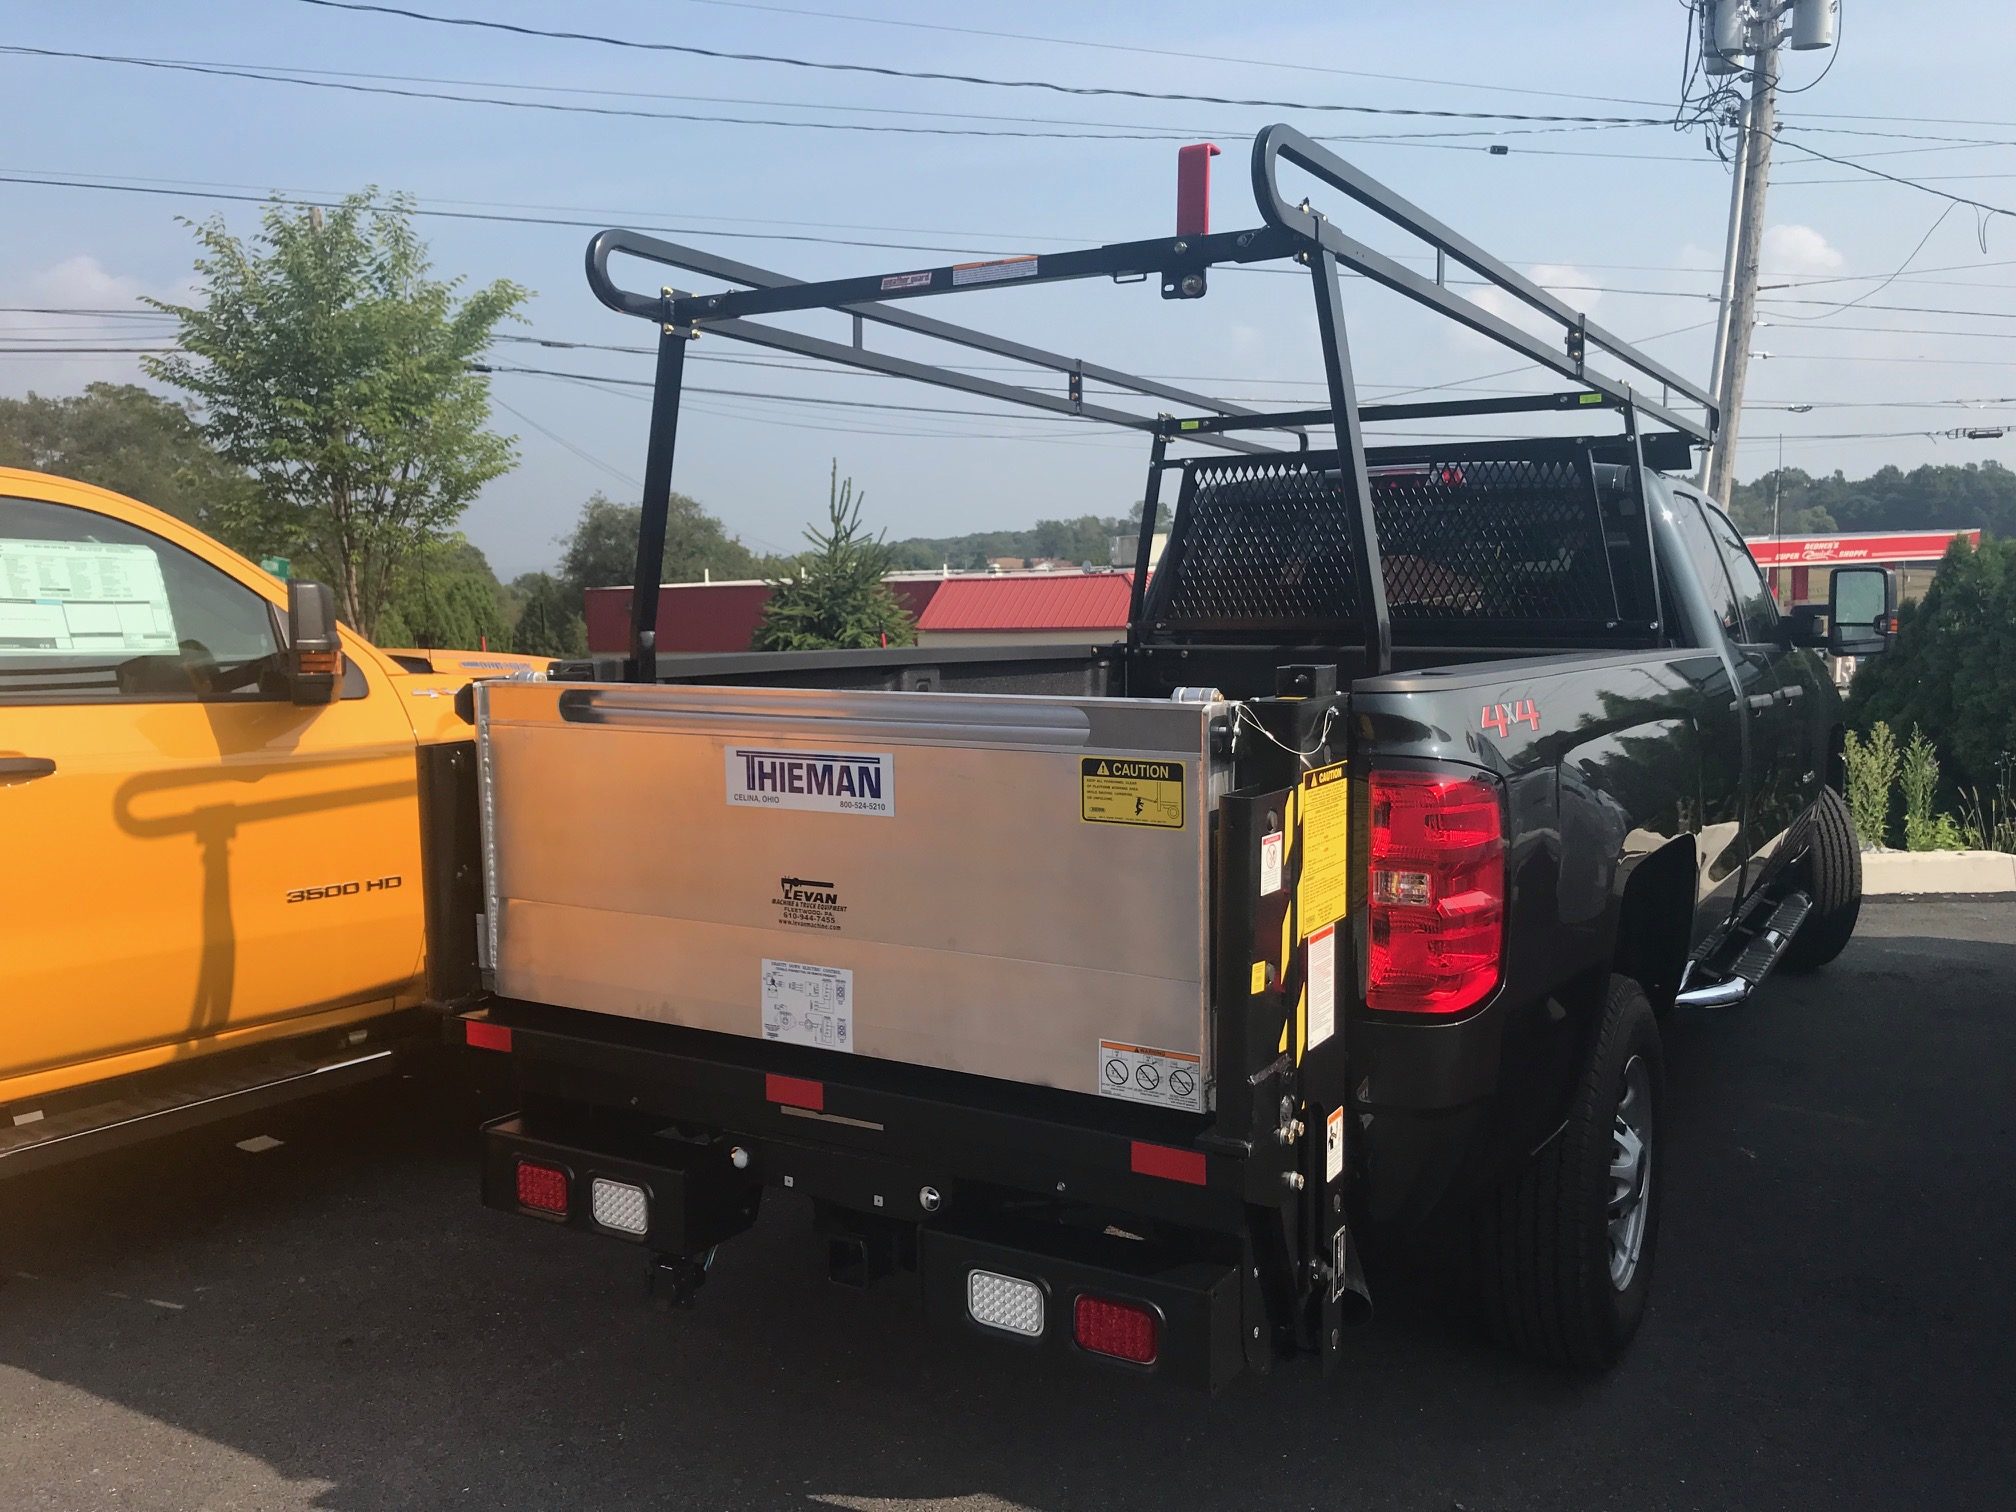 truck bed of black pickup truck parked on pavement